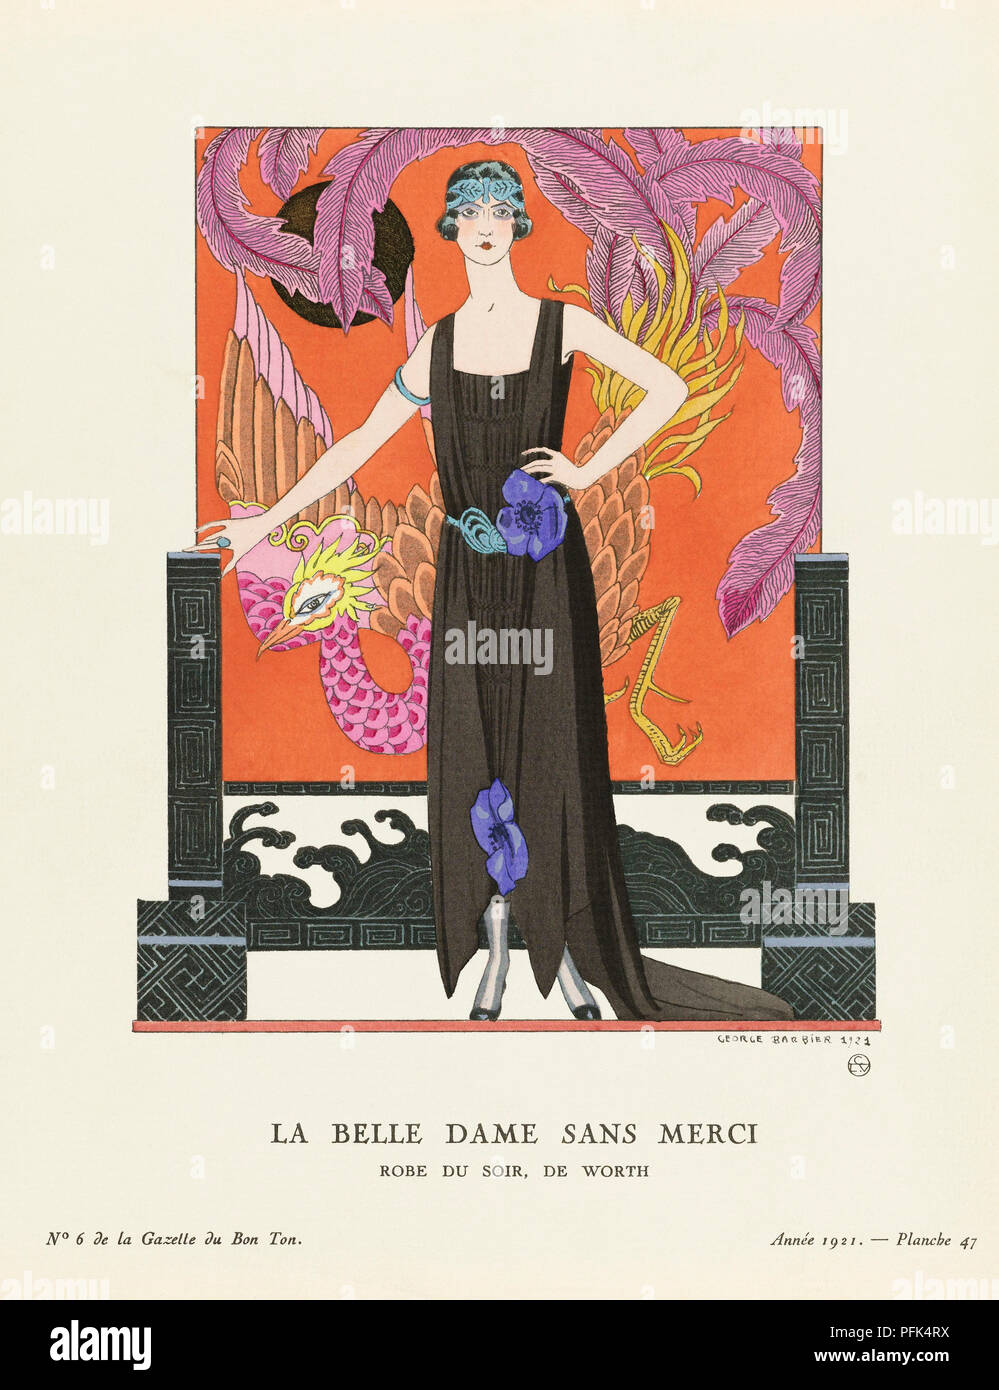 La Belle Dame Sans Merci.  A Beautiful, Merciless Woman. Robe du Soir, de Worth.  Evening dress by Worth.  Art-deco fashion illustration by French artist George Barbier, 1882-1932.  The work was created for the Gazette du Bon Ton, a Parisian fashion magazine published between 1912-1915 and 1919-1925. - Stock Image